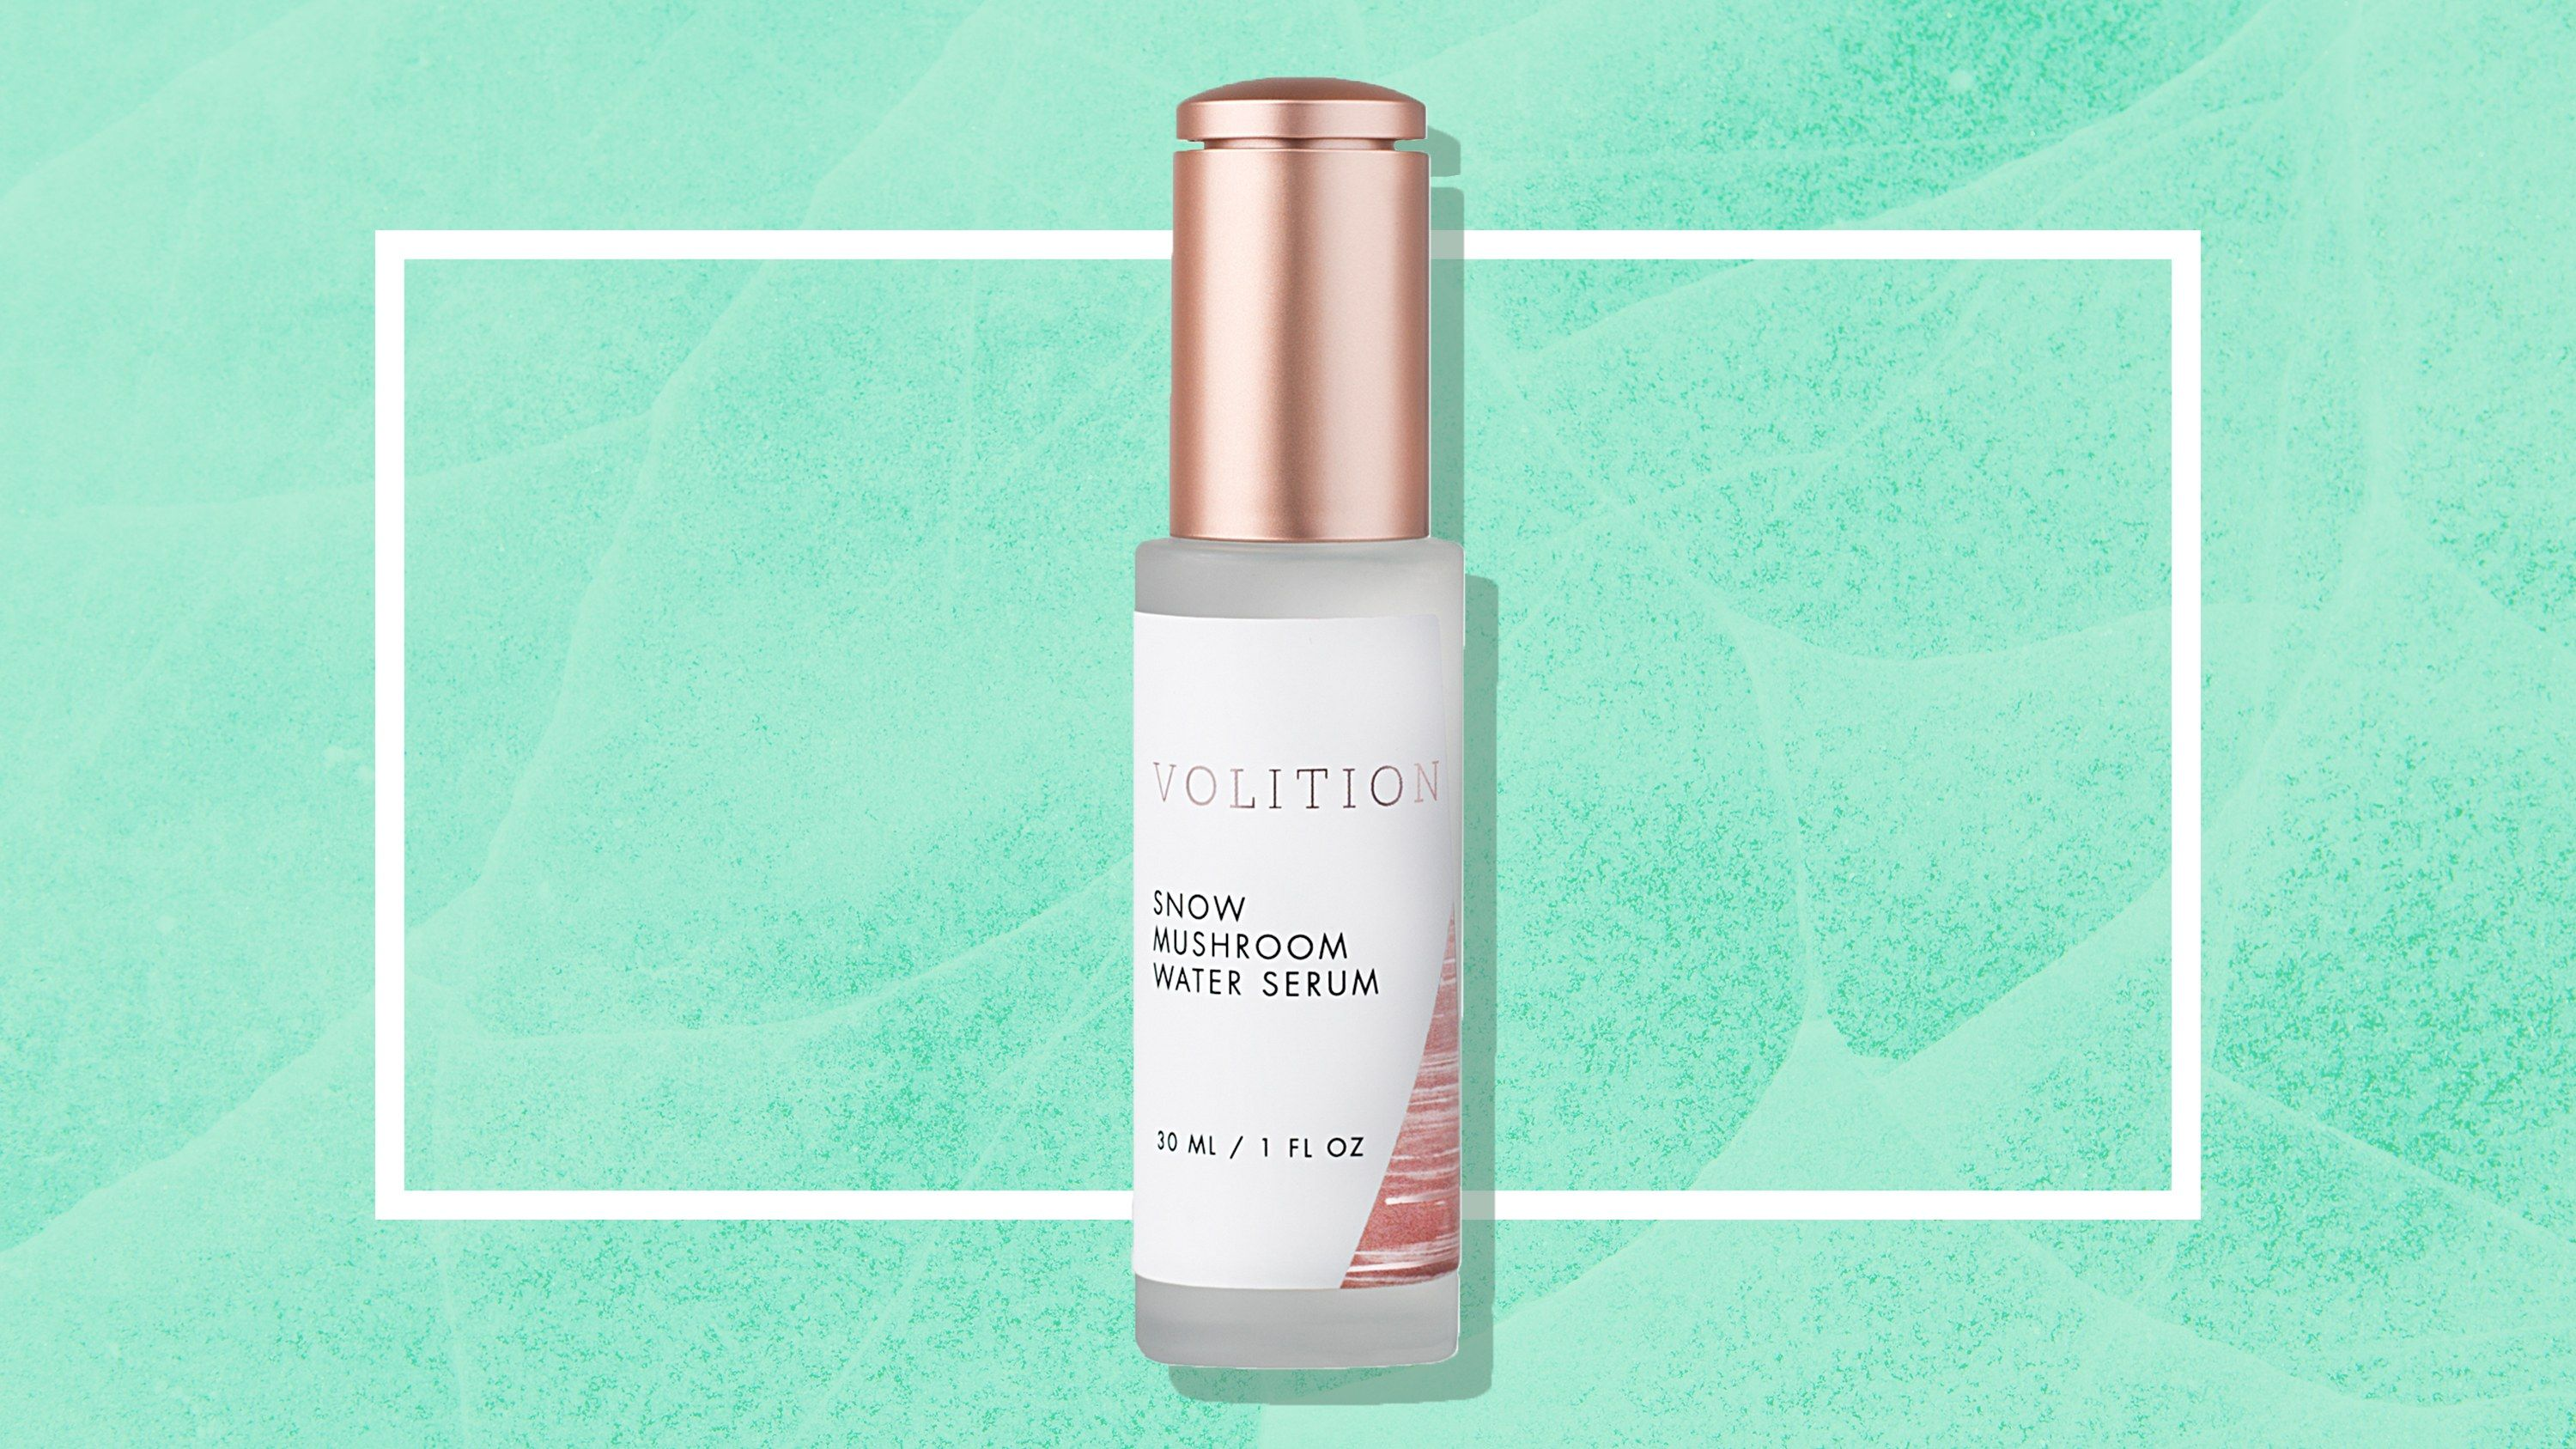 Volition Beauty Just Dropped a BrandNew Serum With